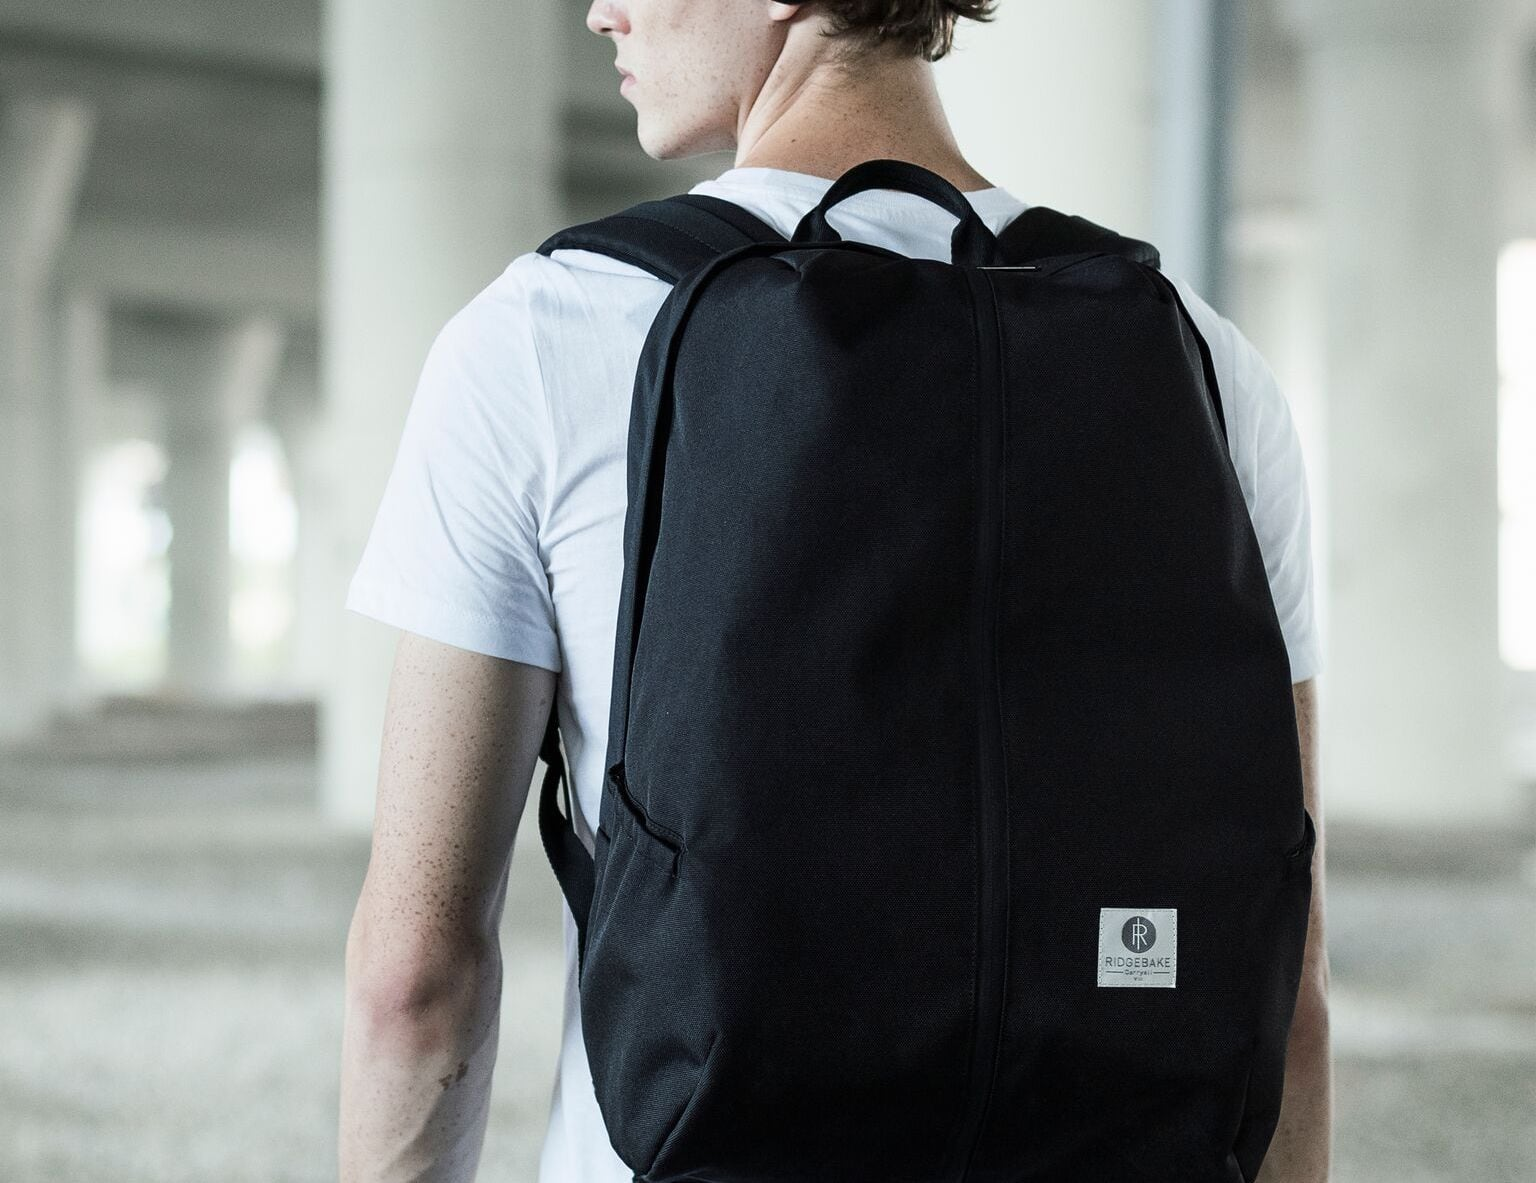 PentaCarry Minimalist Gaming Backpack is made for serious gamers